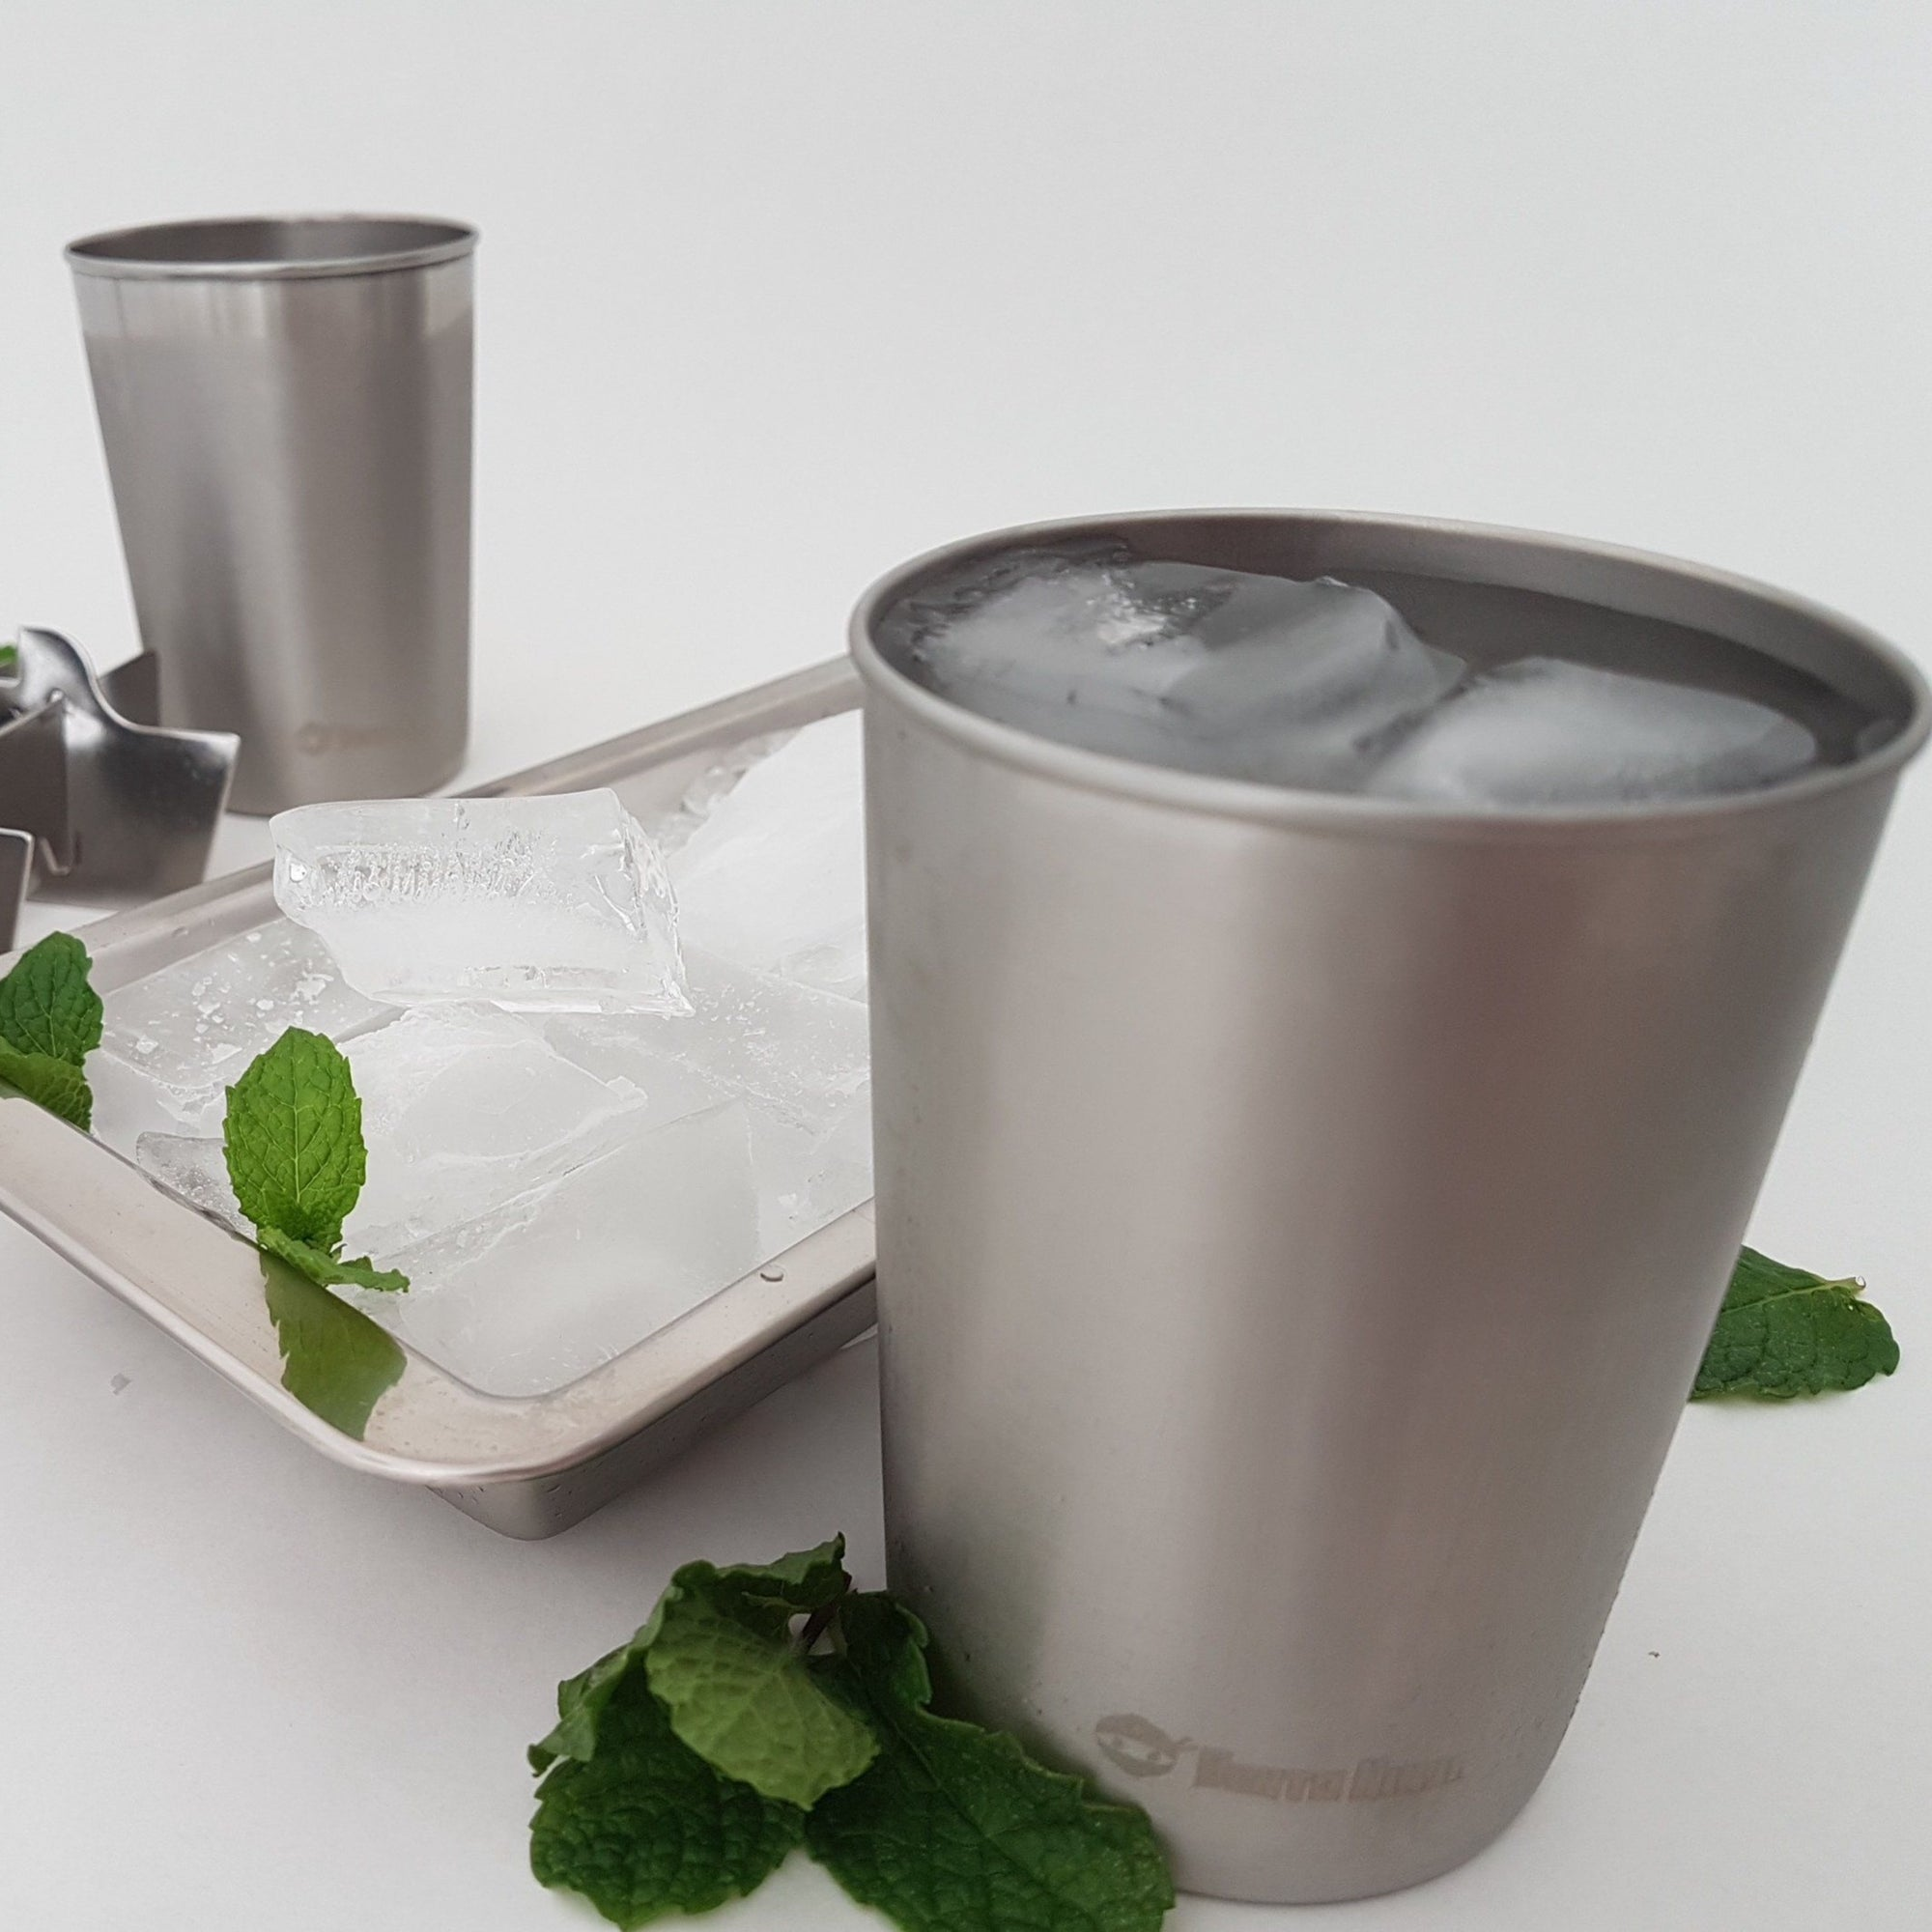 Stainless steel tumblers 2pc set